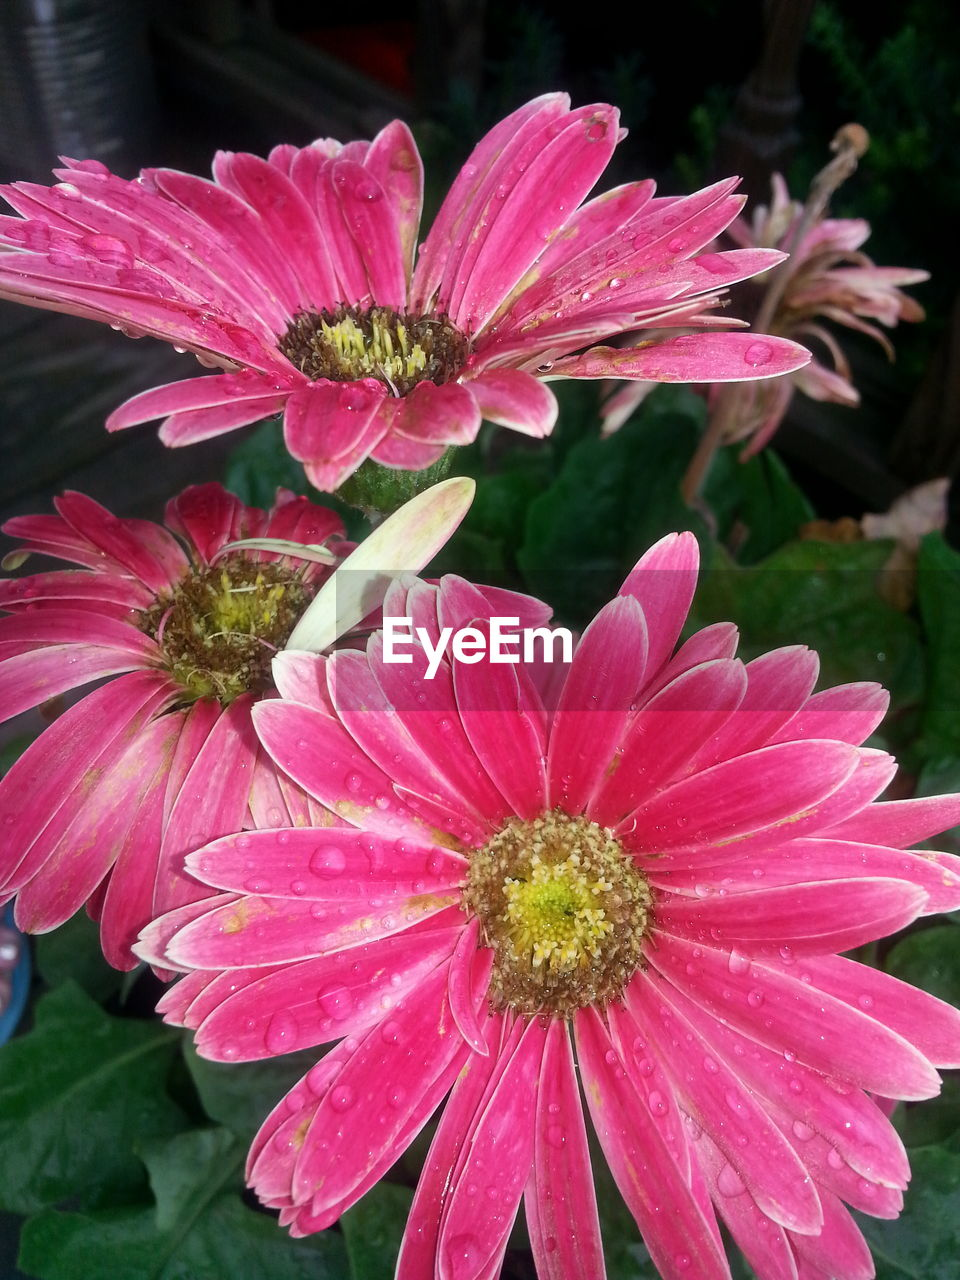 flower, petal, growth, fragility, flower head, pink color, nature, beauty in nature, freshness, plant, blooming, pollen, outdoors, no people, day, close-up